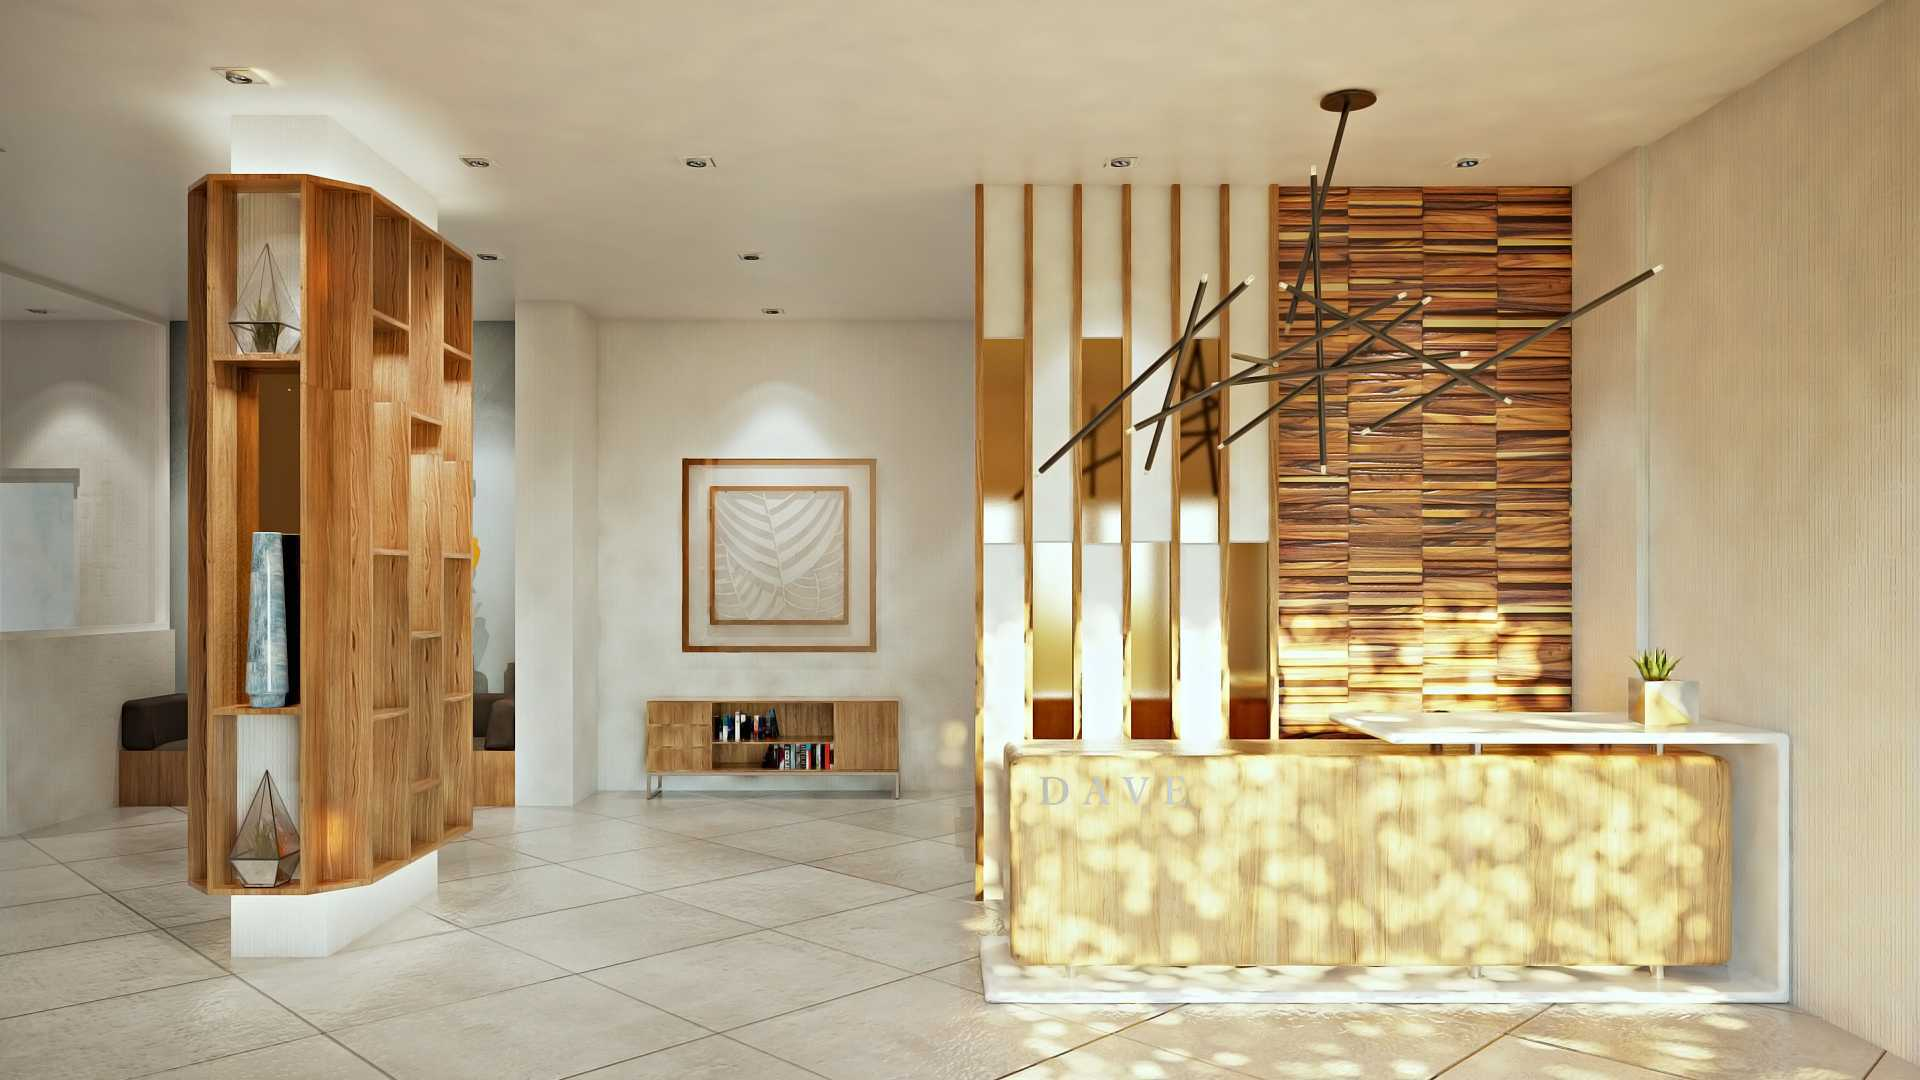 Hive Design & Build Dave Depok Depok Reception Area Modern  25960